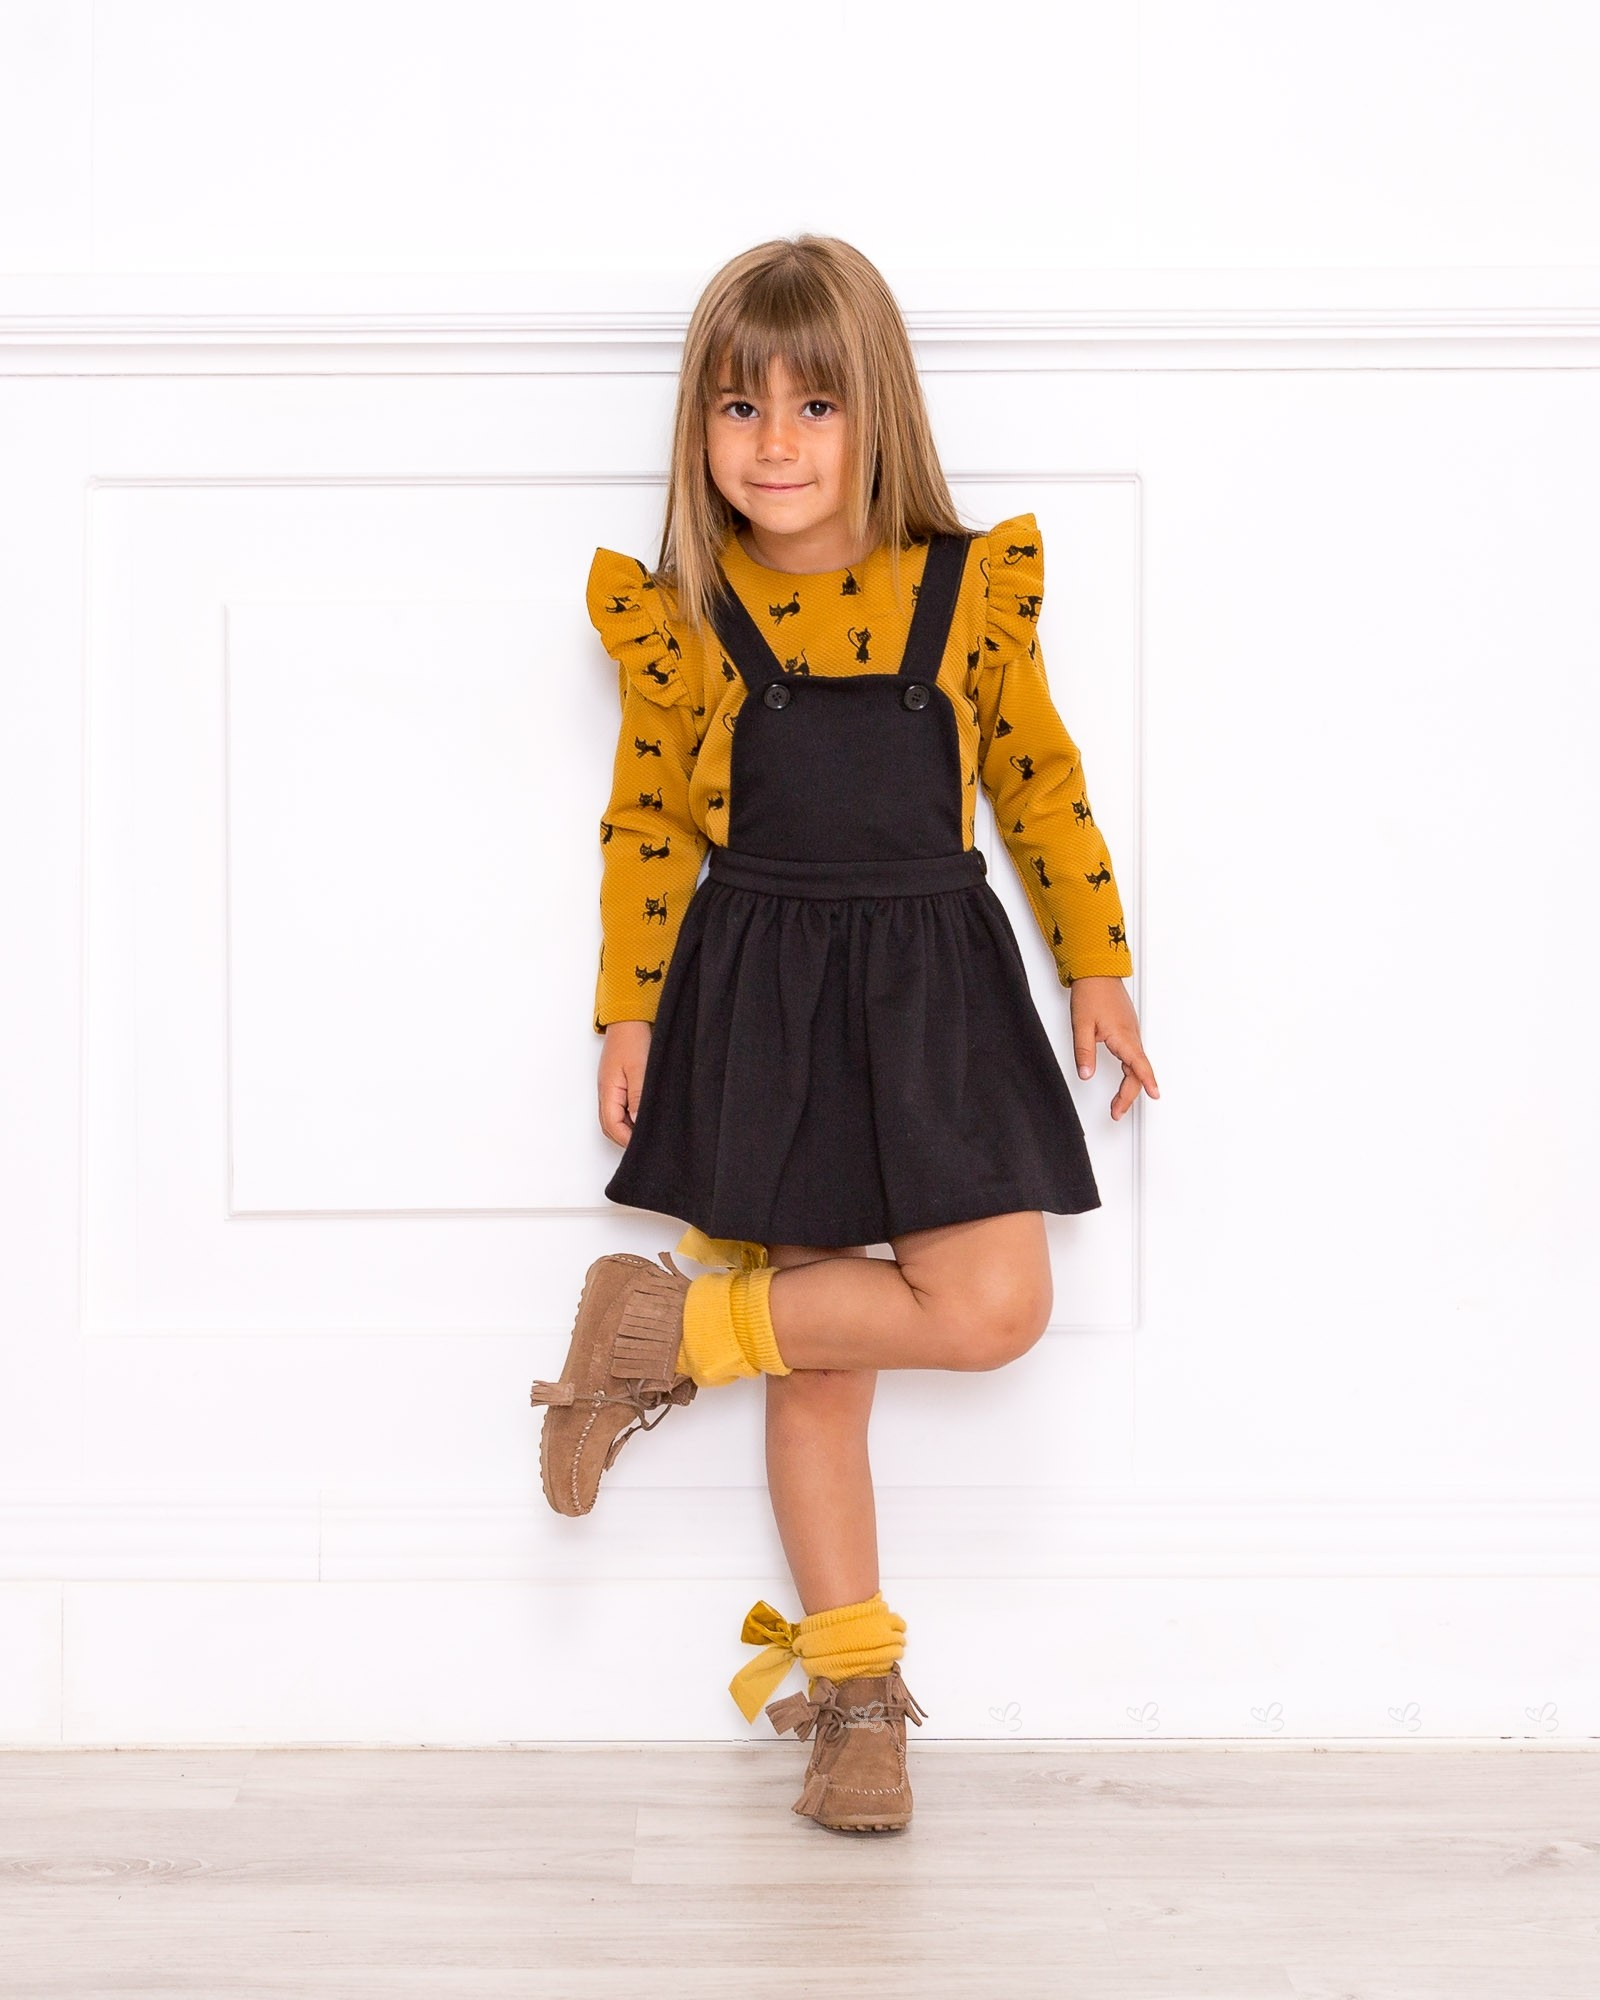 fae51a7765 Girls Mustard and Black Cat Blouse   Black Dungaree Dress Outfit. Hover to  zoom